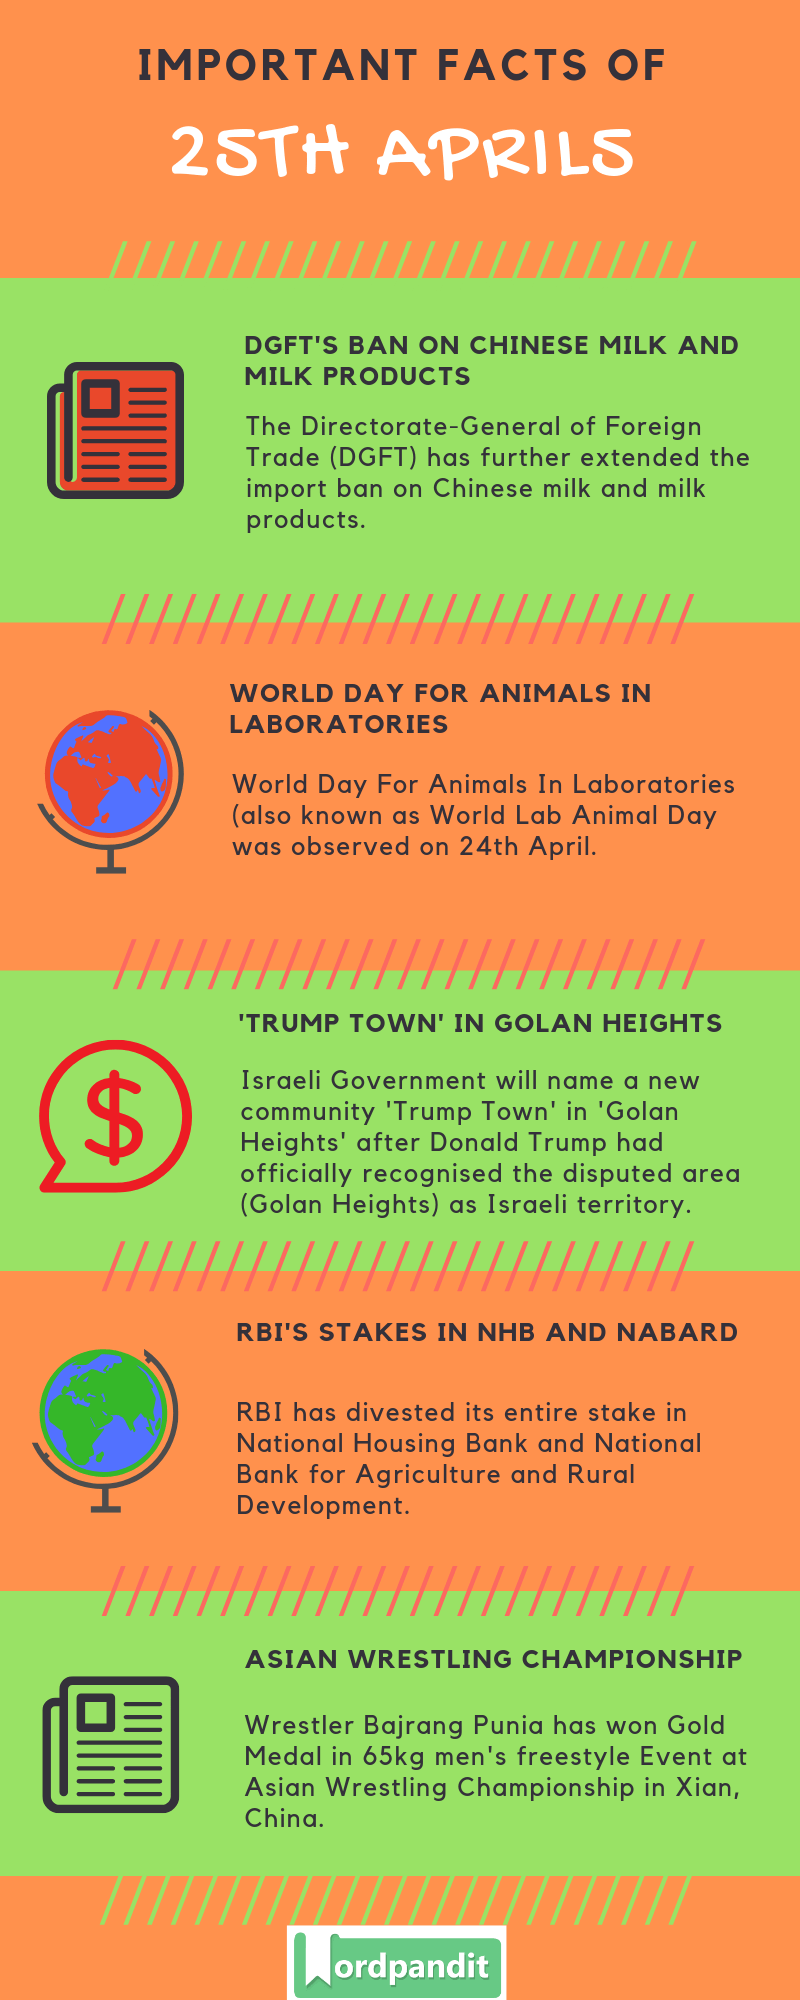 Daily Current Affairs 25 April 2019 Current Affairs Quiz 25 April 2019 Current Affairs Infographic